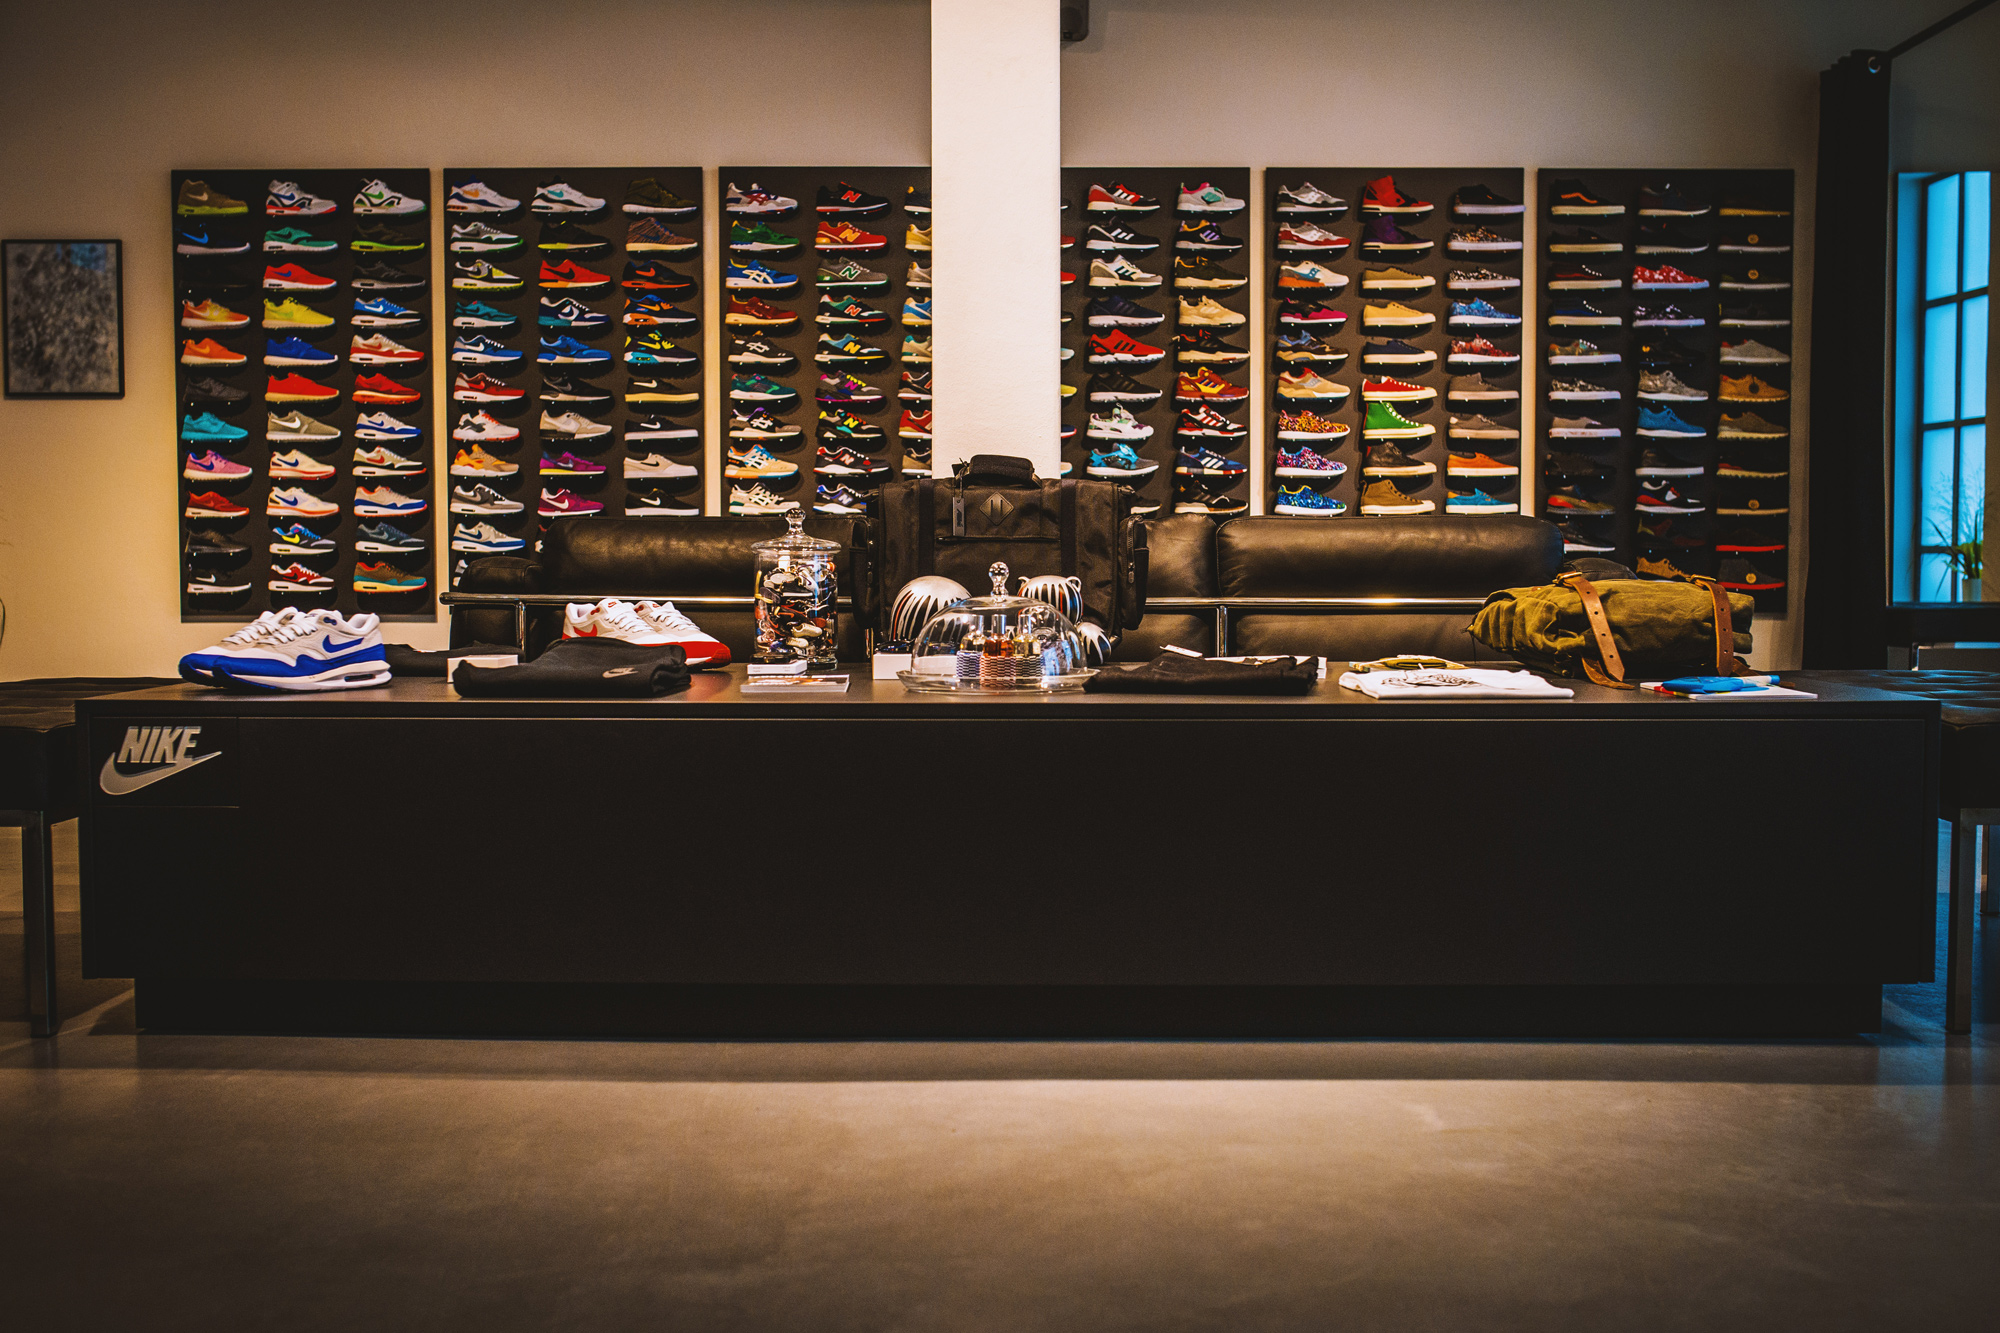 Allike Concept & Sneaker Store in Hamburg-Altona